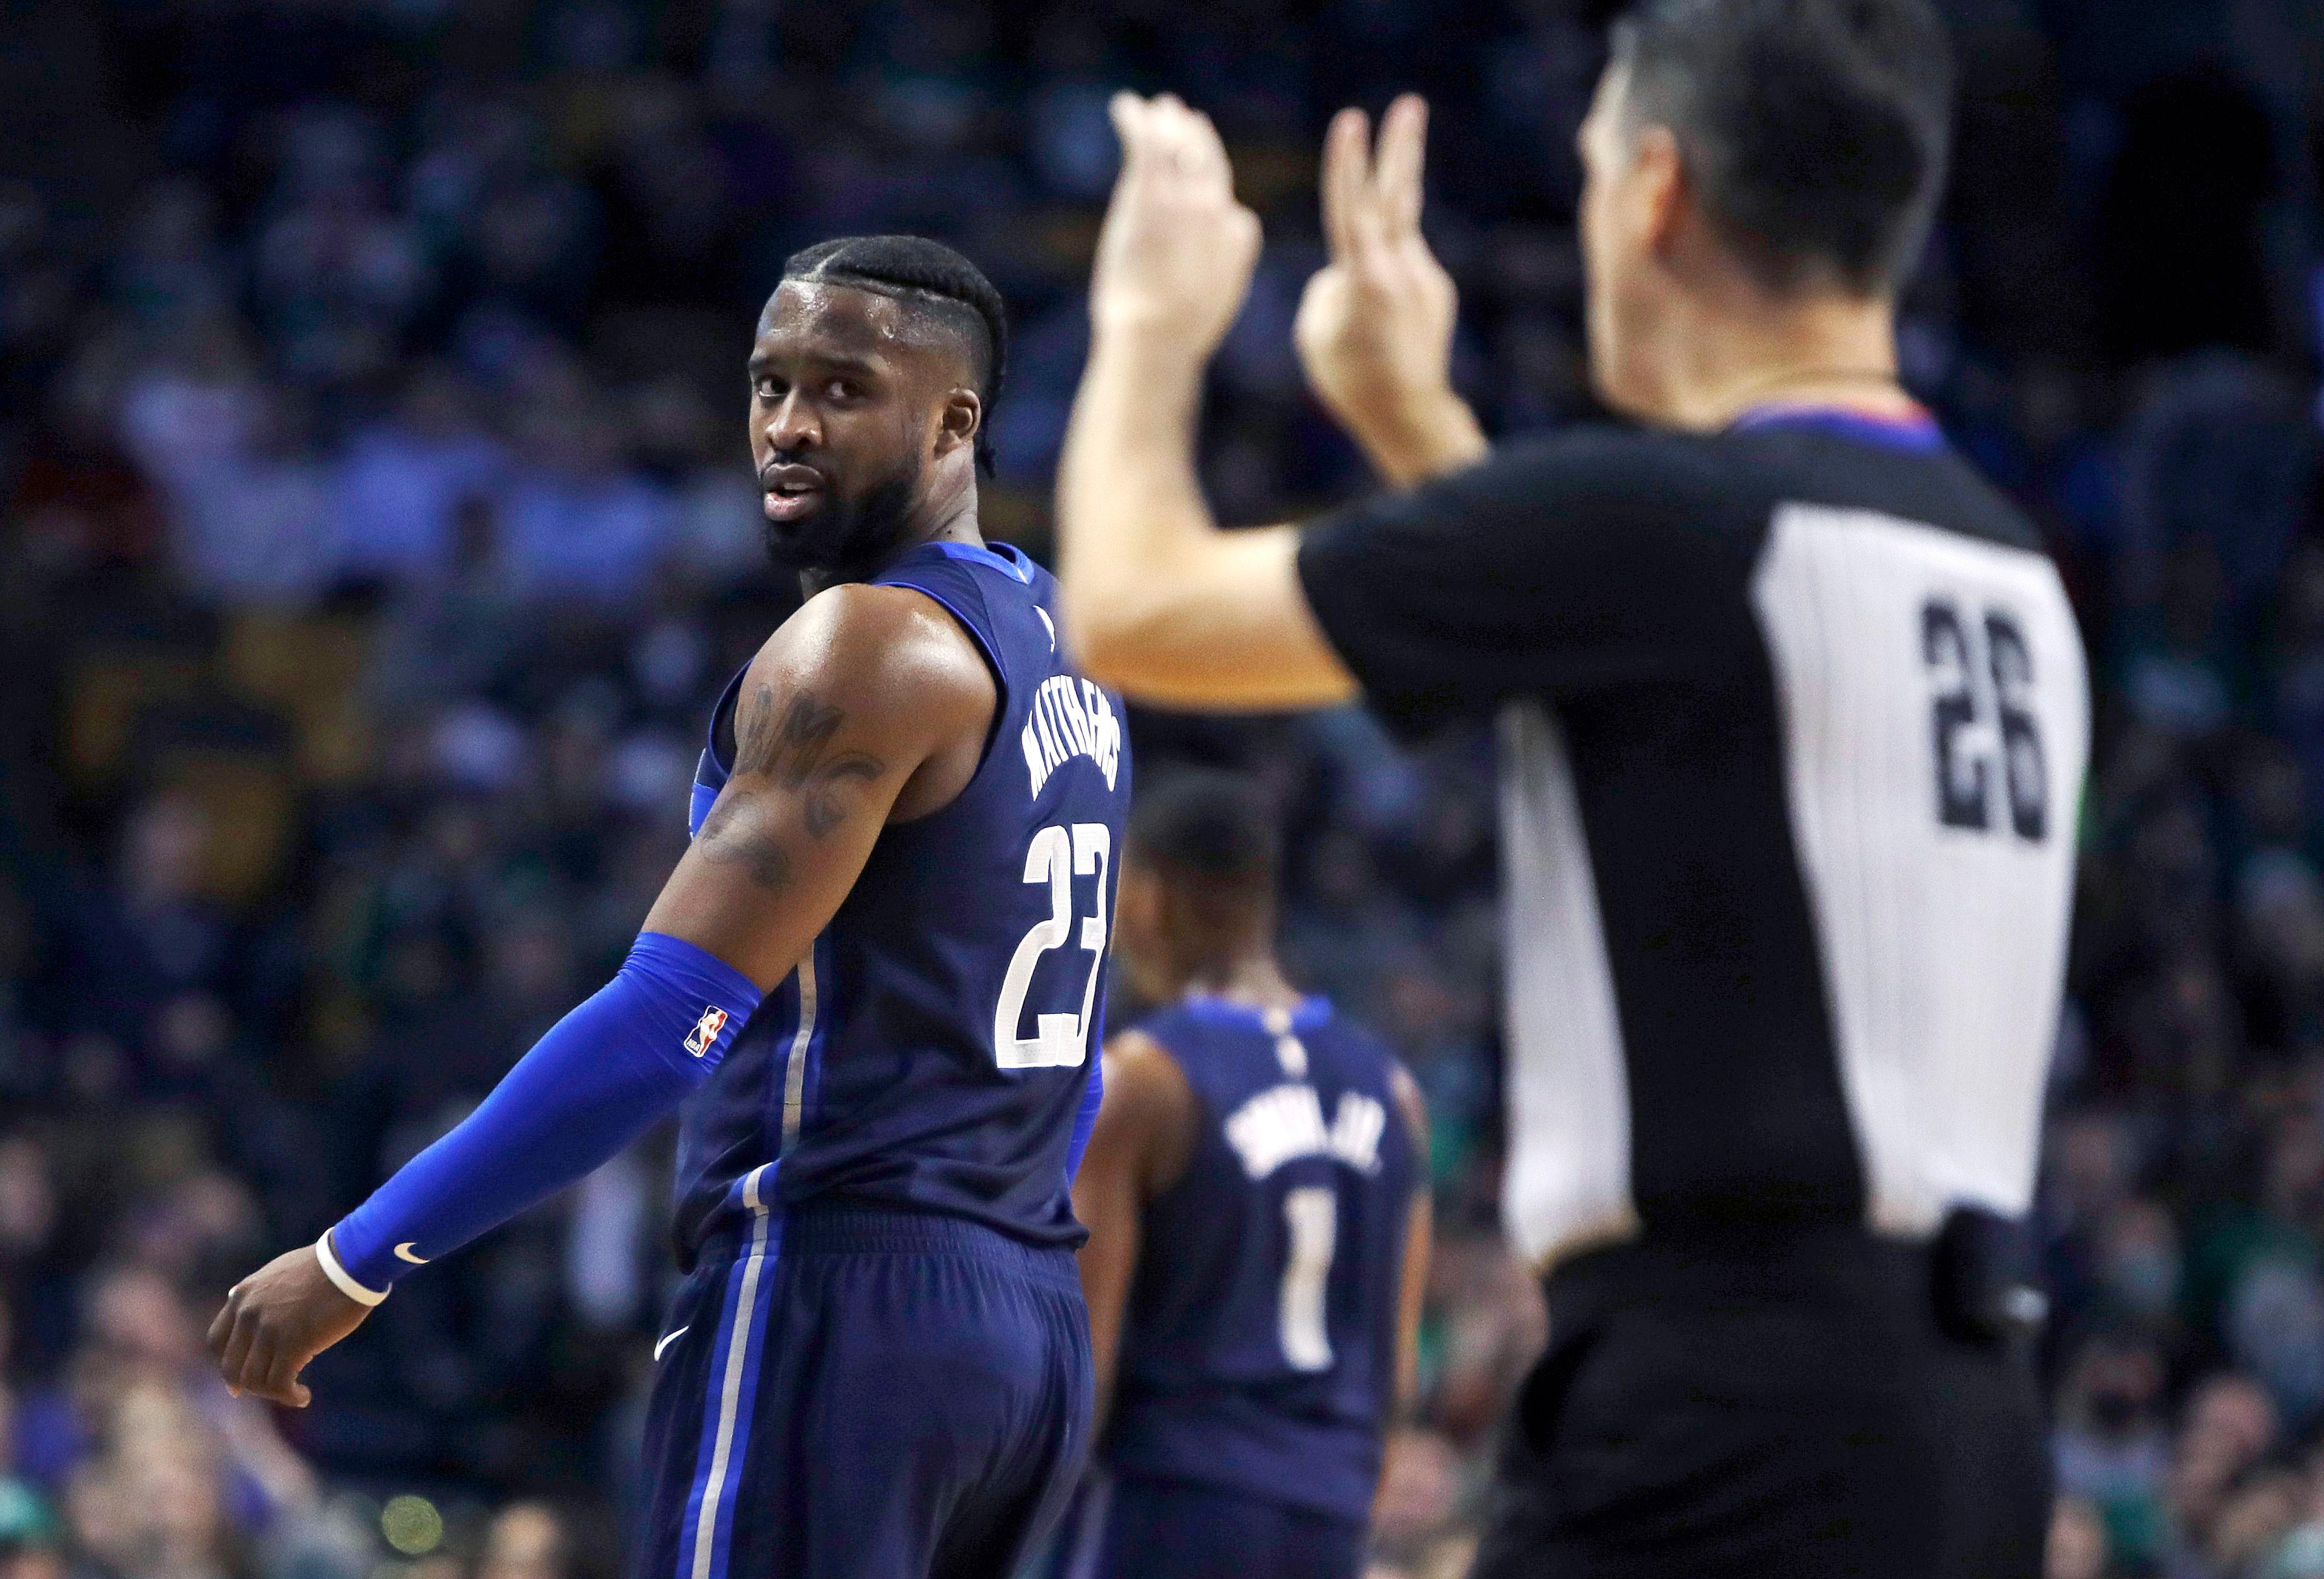 Dallas Mavericks guard Wesley Matthews looks back at referee Pat Fraher, right, as he is called for a personal and technical foul during the first quarter of an NBA basketball game against the Boston Celtics in Boston, Wednesday, Dec. 6, 2017. (AP Photo/Charles Krupa)